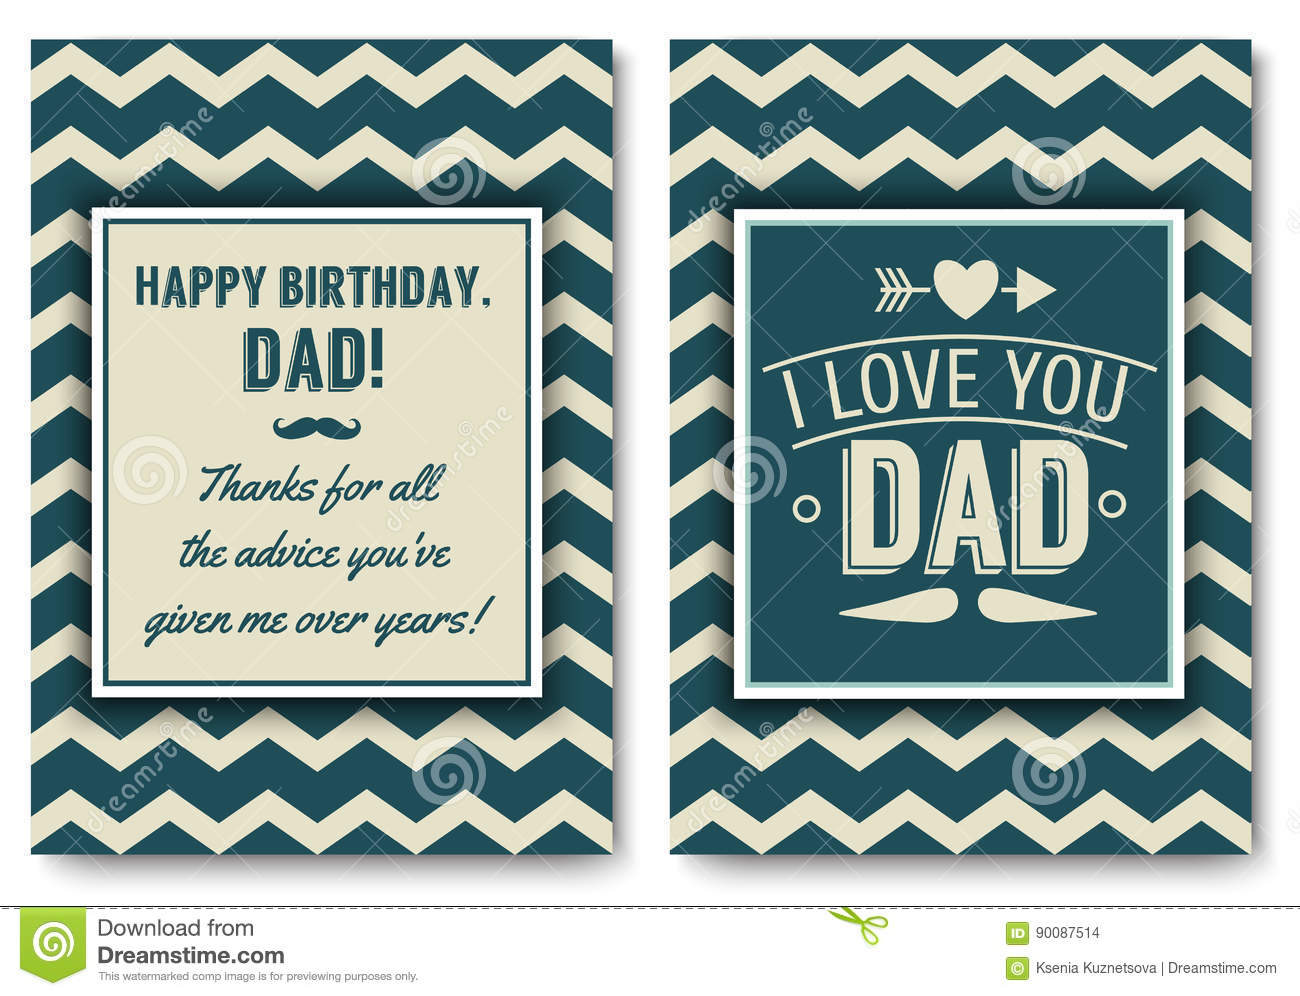 Dad Birthday Card With Words Of Love Stock Vector Illustration Of